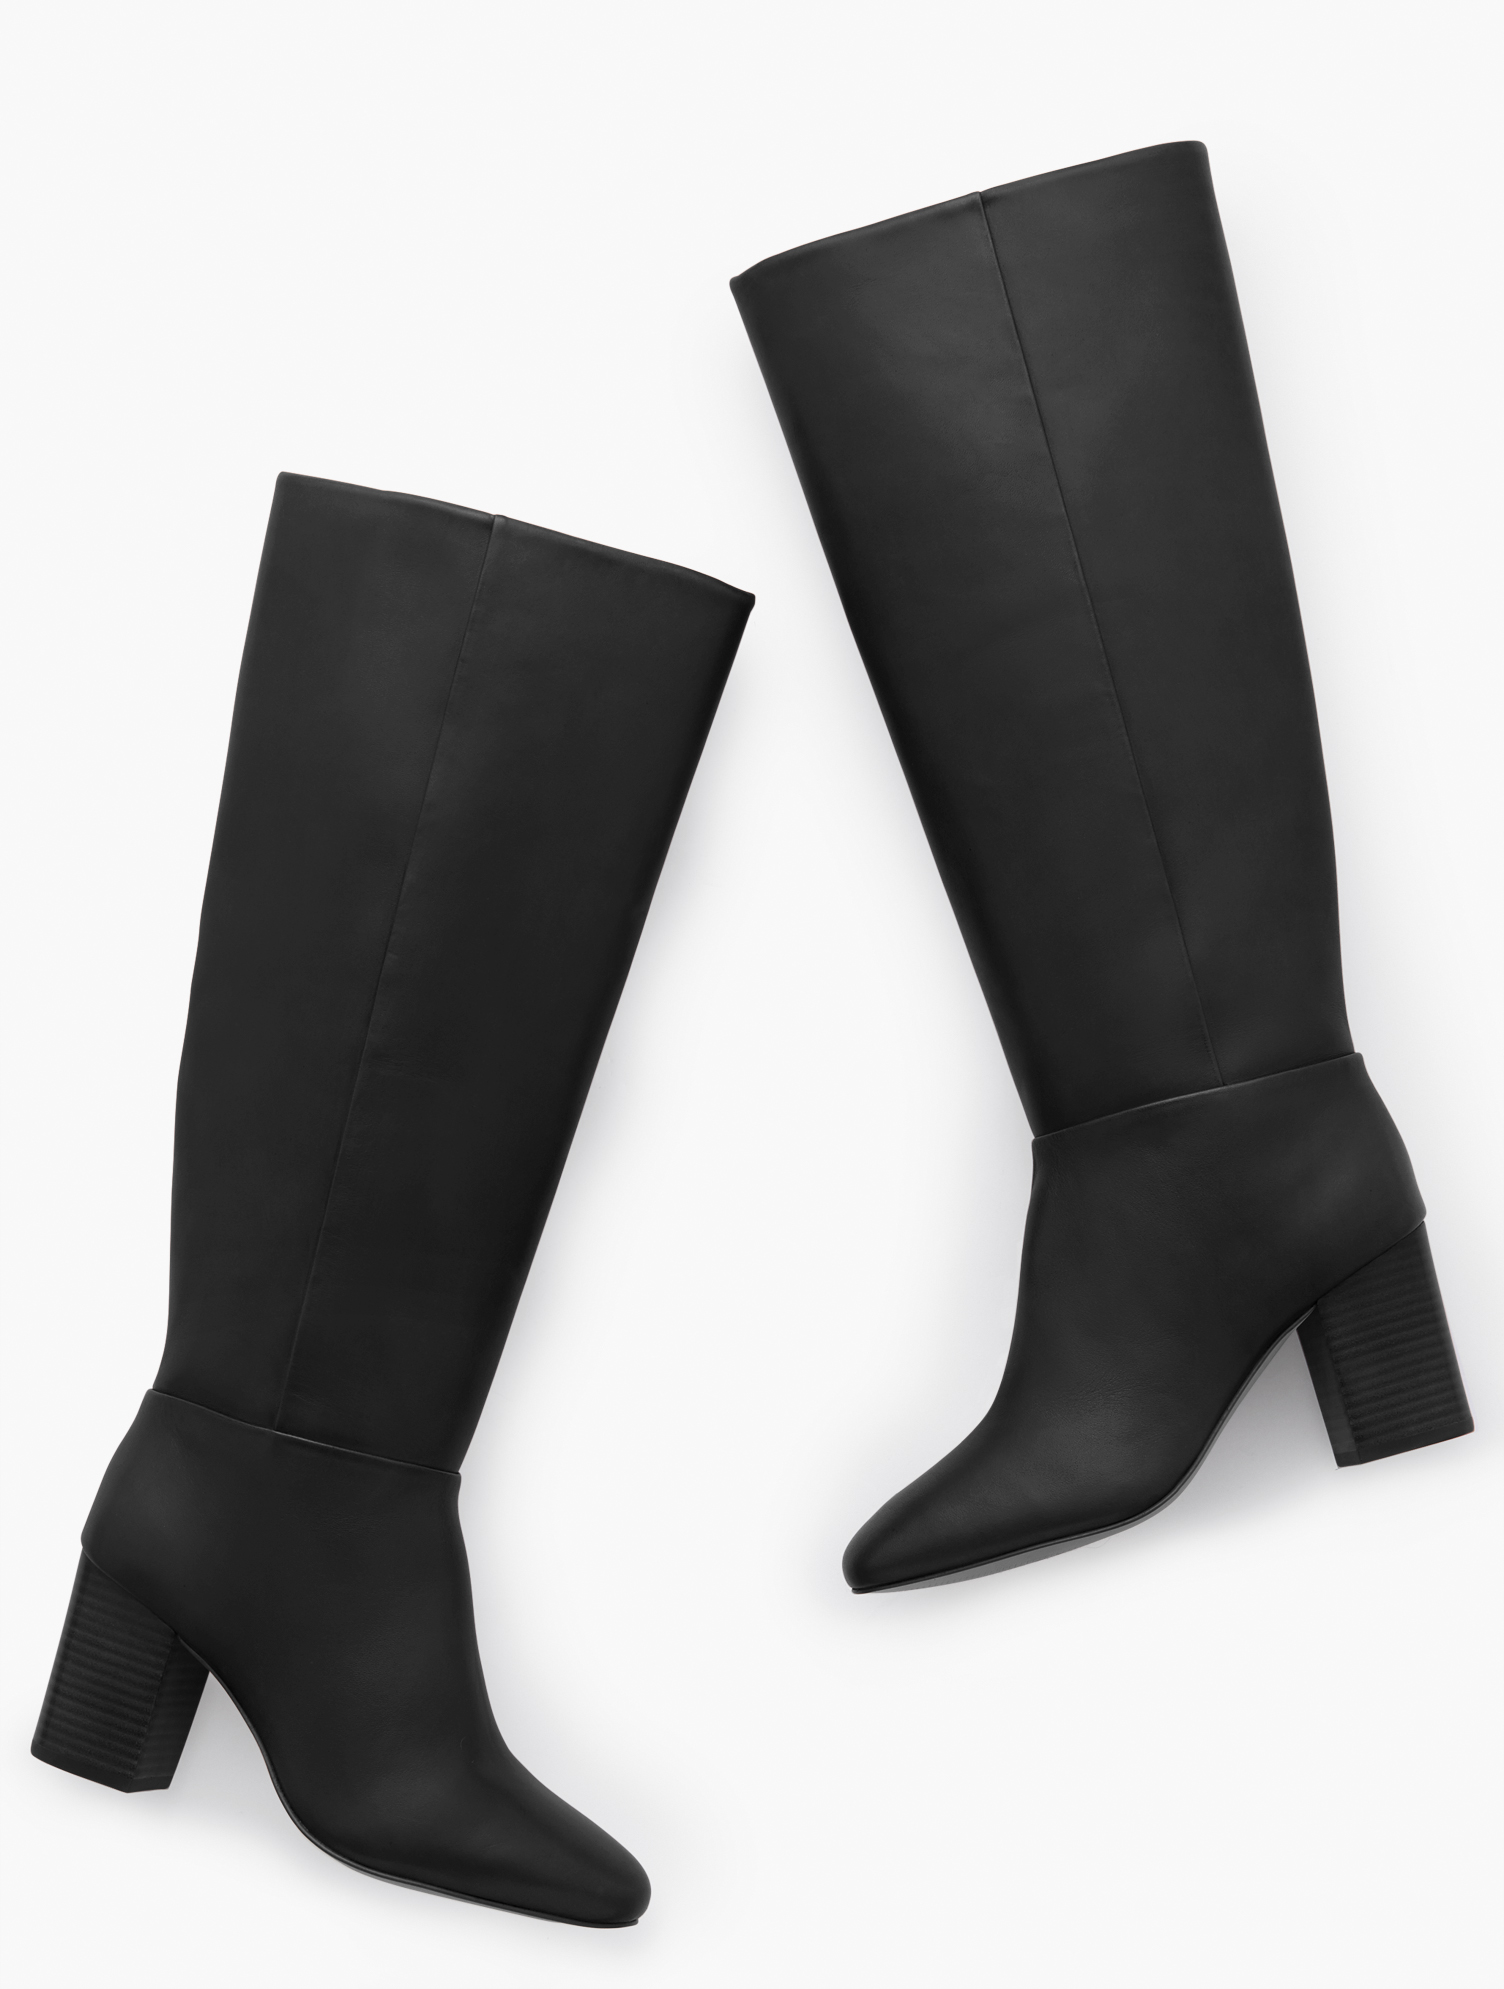 Our Darcy Tall Boots in luxurious Nappa leather look great dressed up or down. Also available in Extended Calf. Features 3MM Memory foam footbed 3 inches heel Round Toe Imported Material: 100% Leather Darcy Tall Nappa Boots - Black - 11M Talbots